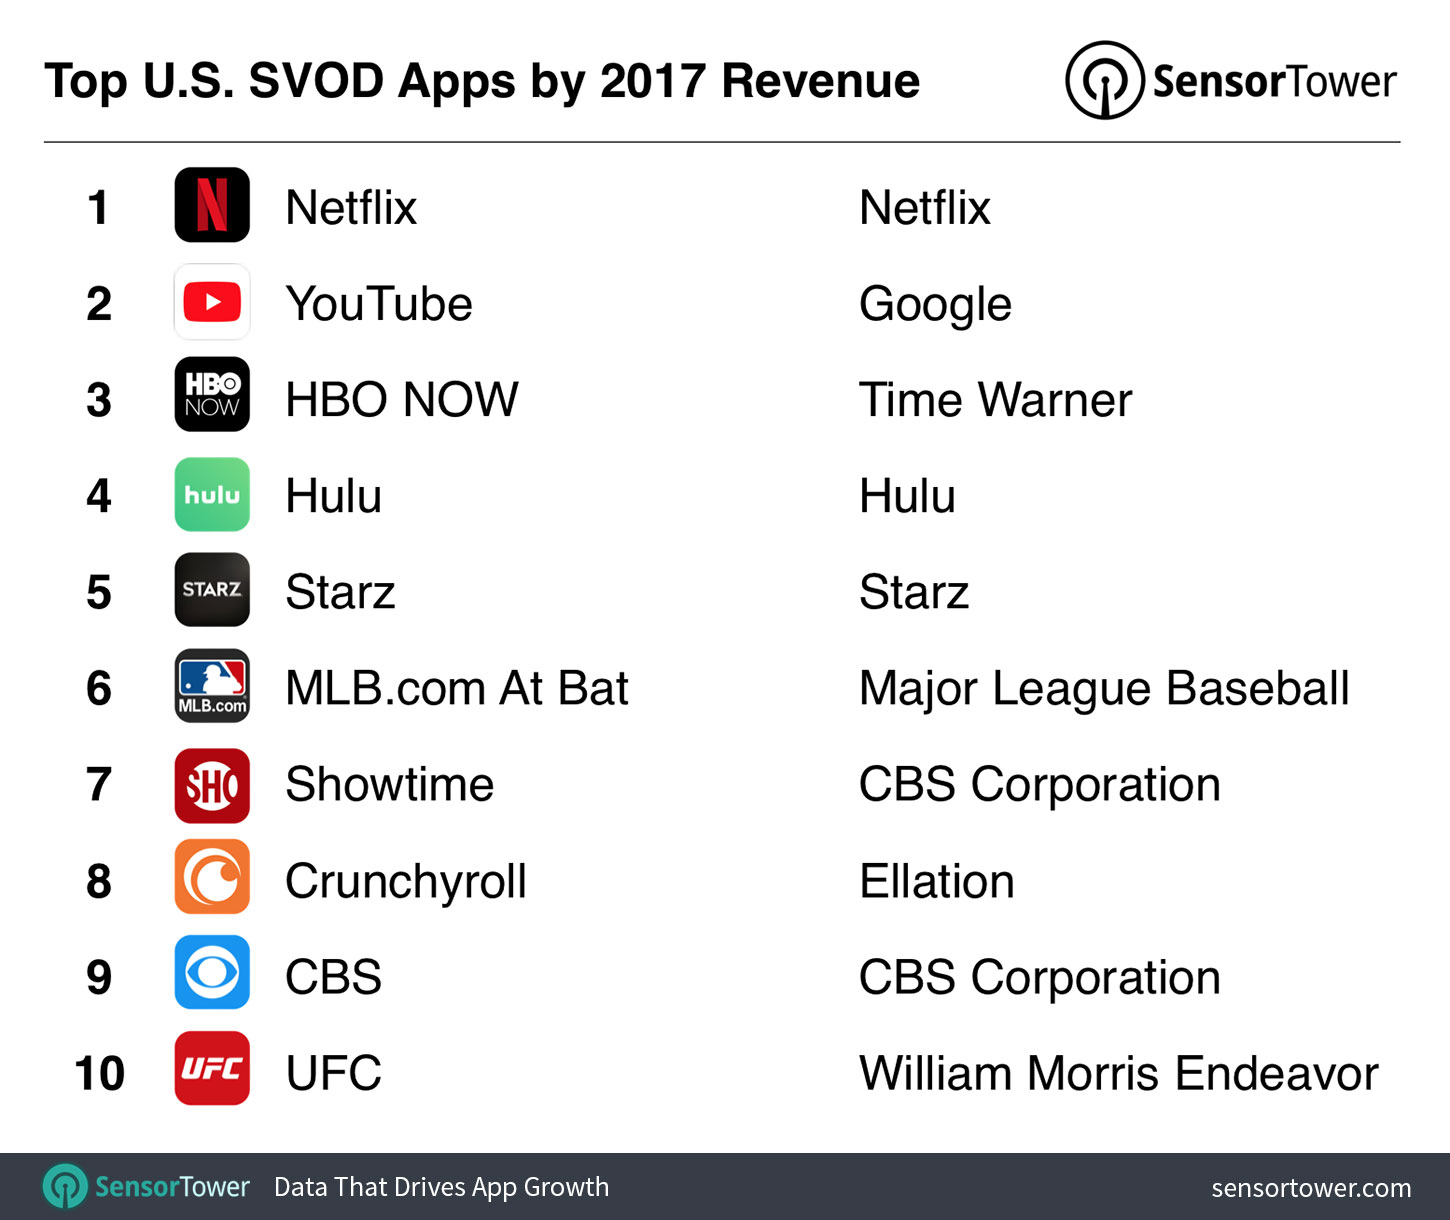 Top 10 U.S. SVOD Apps by Revenue for 2017  - top us svod apps by revenue 2017 - Revenue from the Top Subscription Video on Demand Apps Grew 77% Last Year in the U.S.